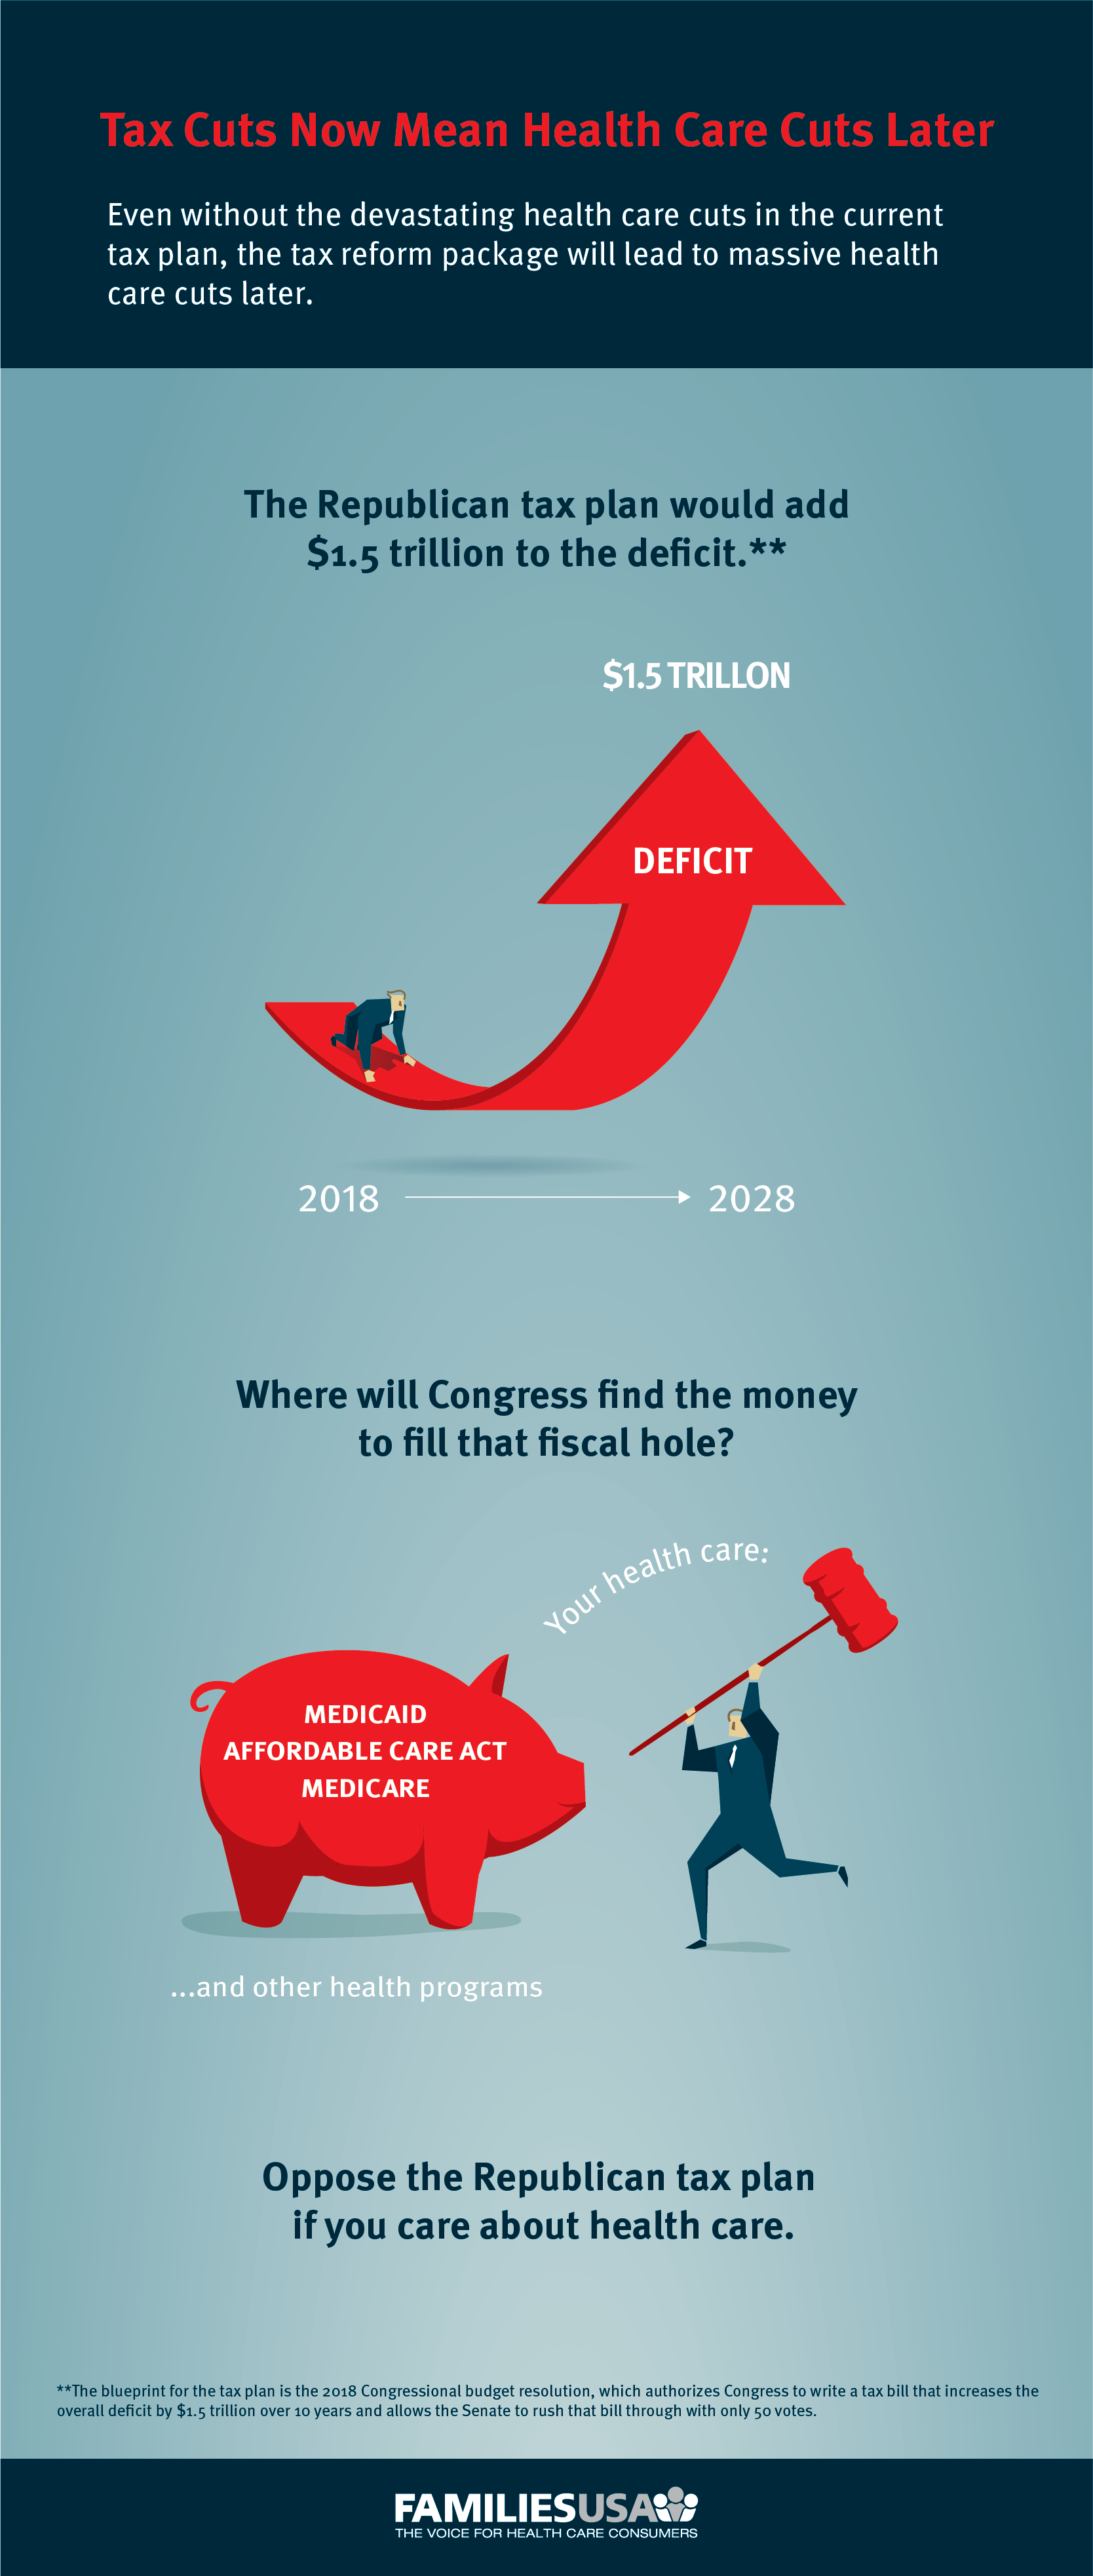 https://familiesusa.org/wp-content/uploads/2019/09/TaxReform_Infographic-01.png